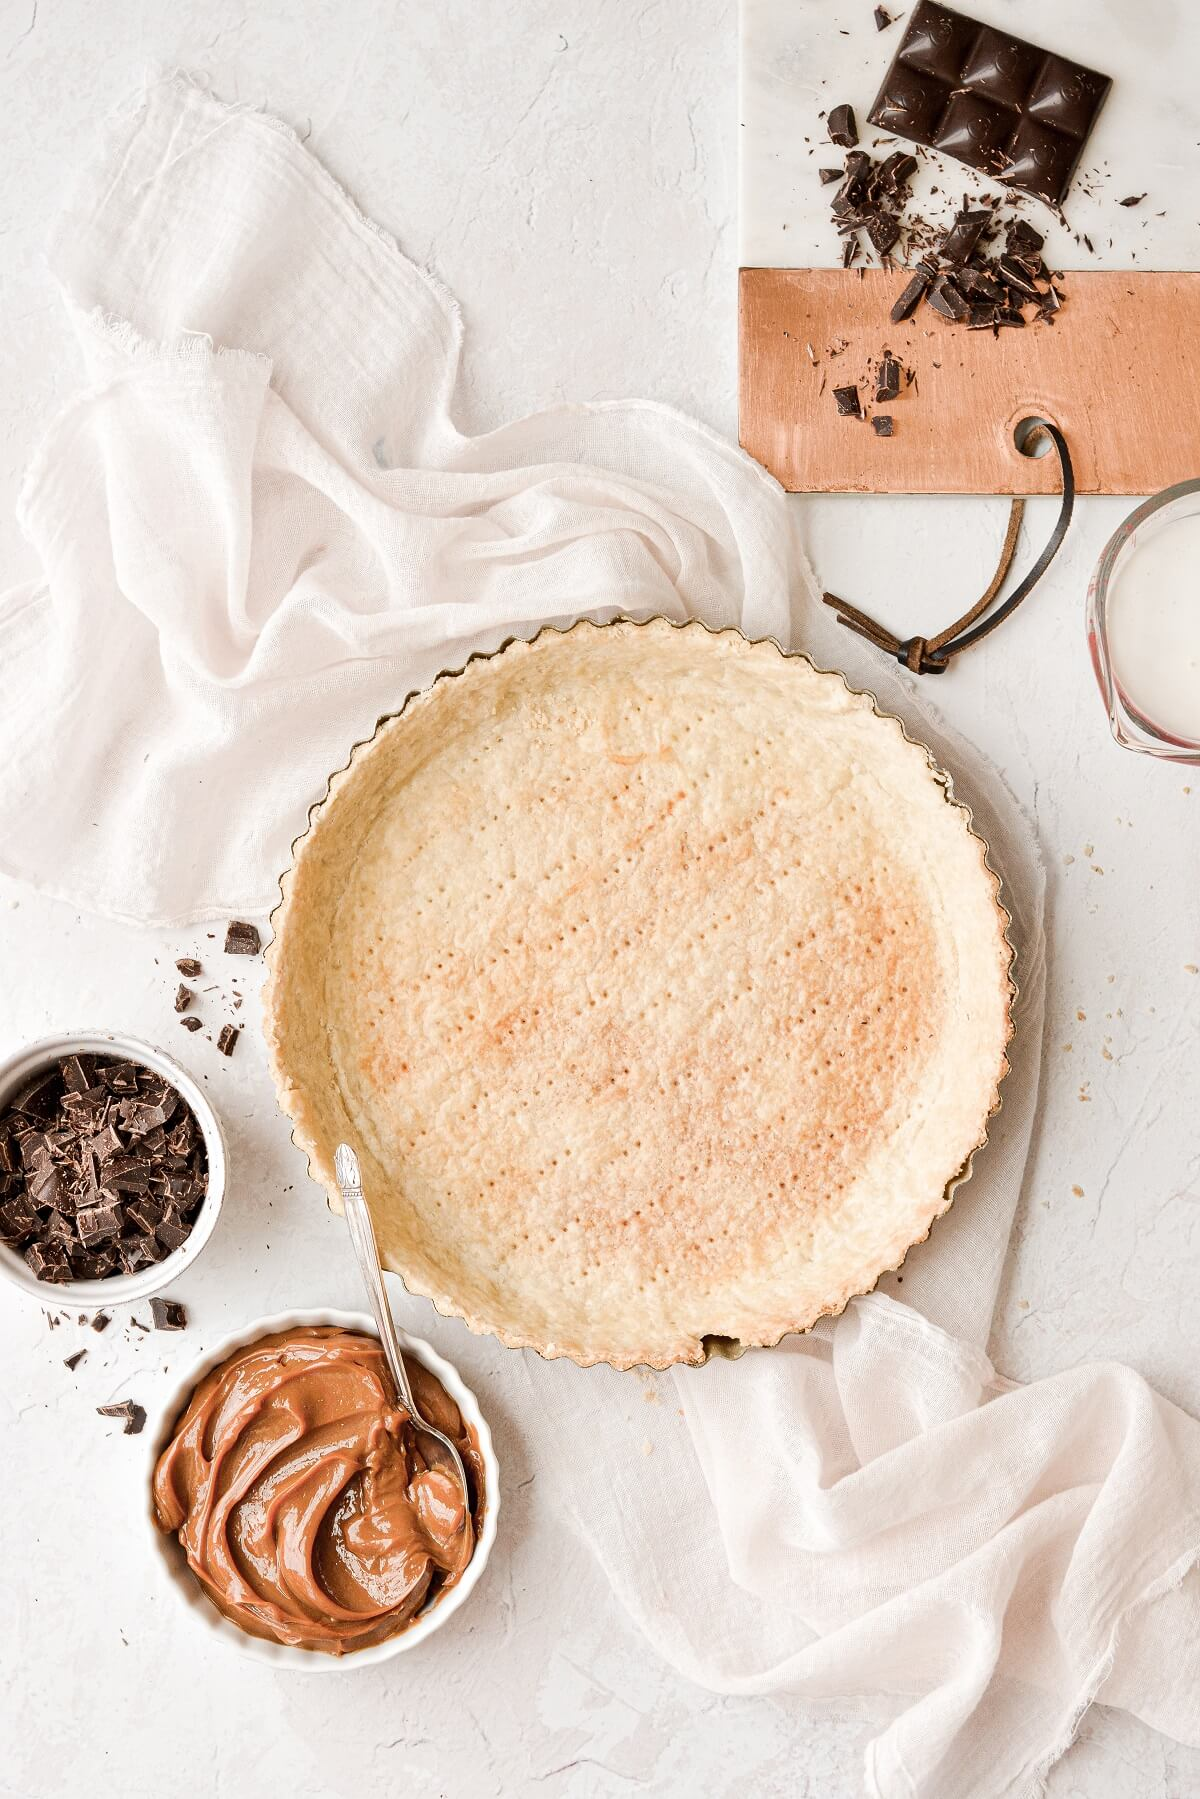 A baked tart shell, ready to be filled with caramel and chocolate ganache.